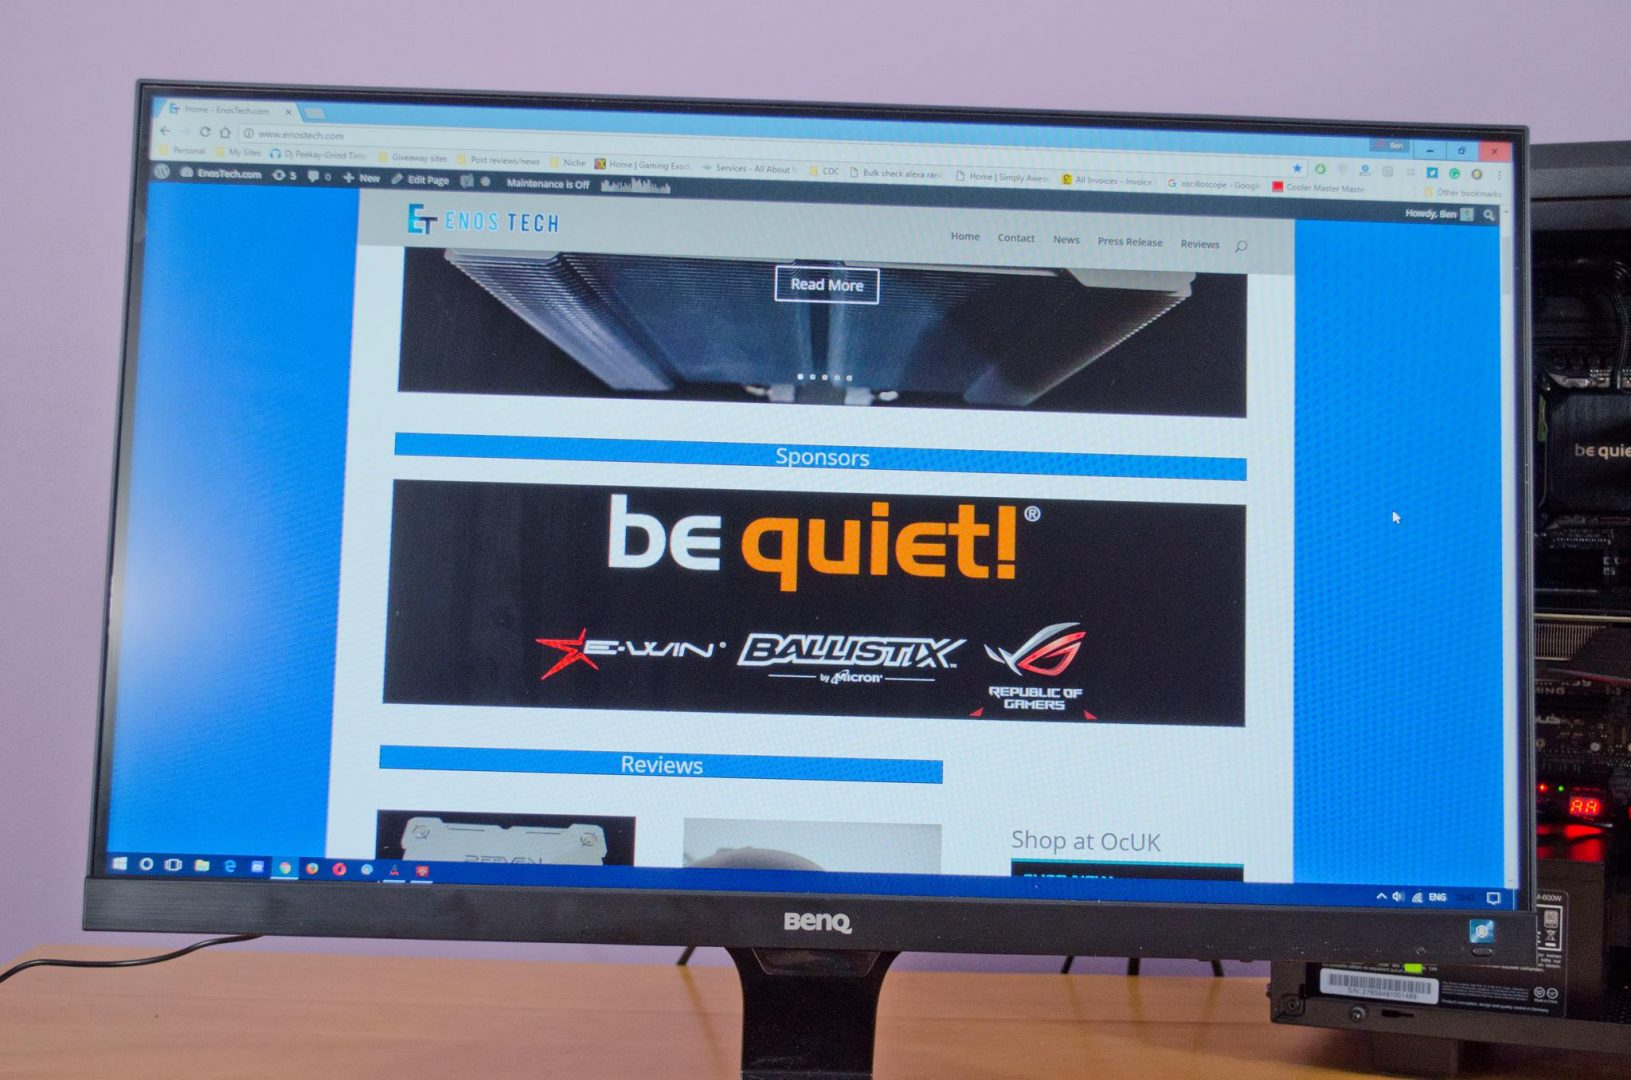 benq ew2775zh monitor review